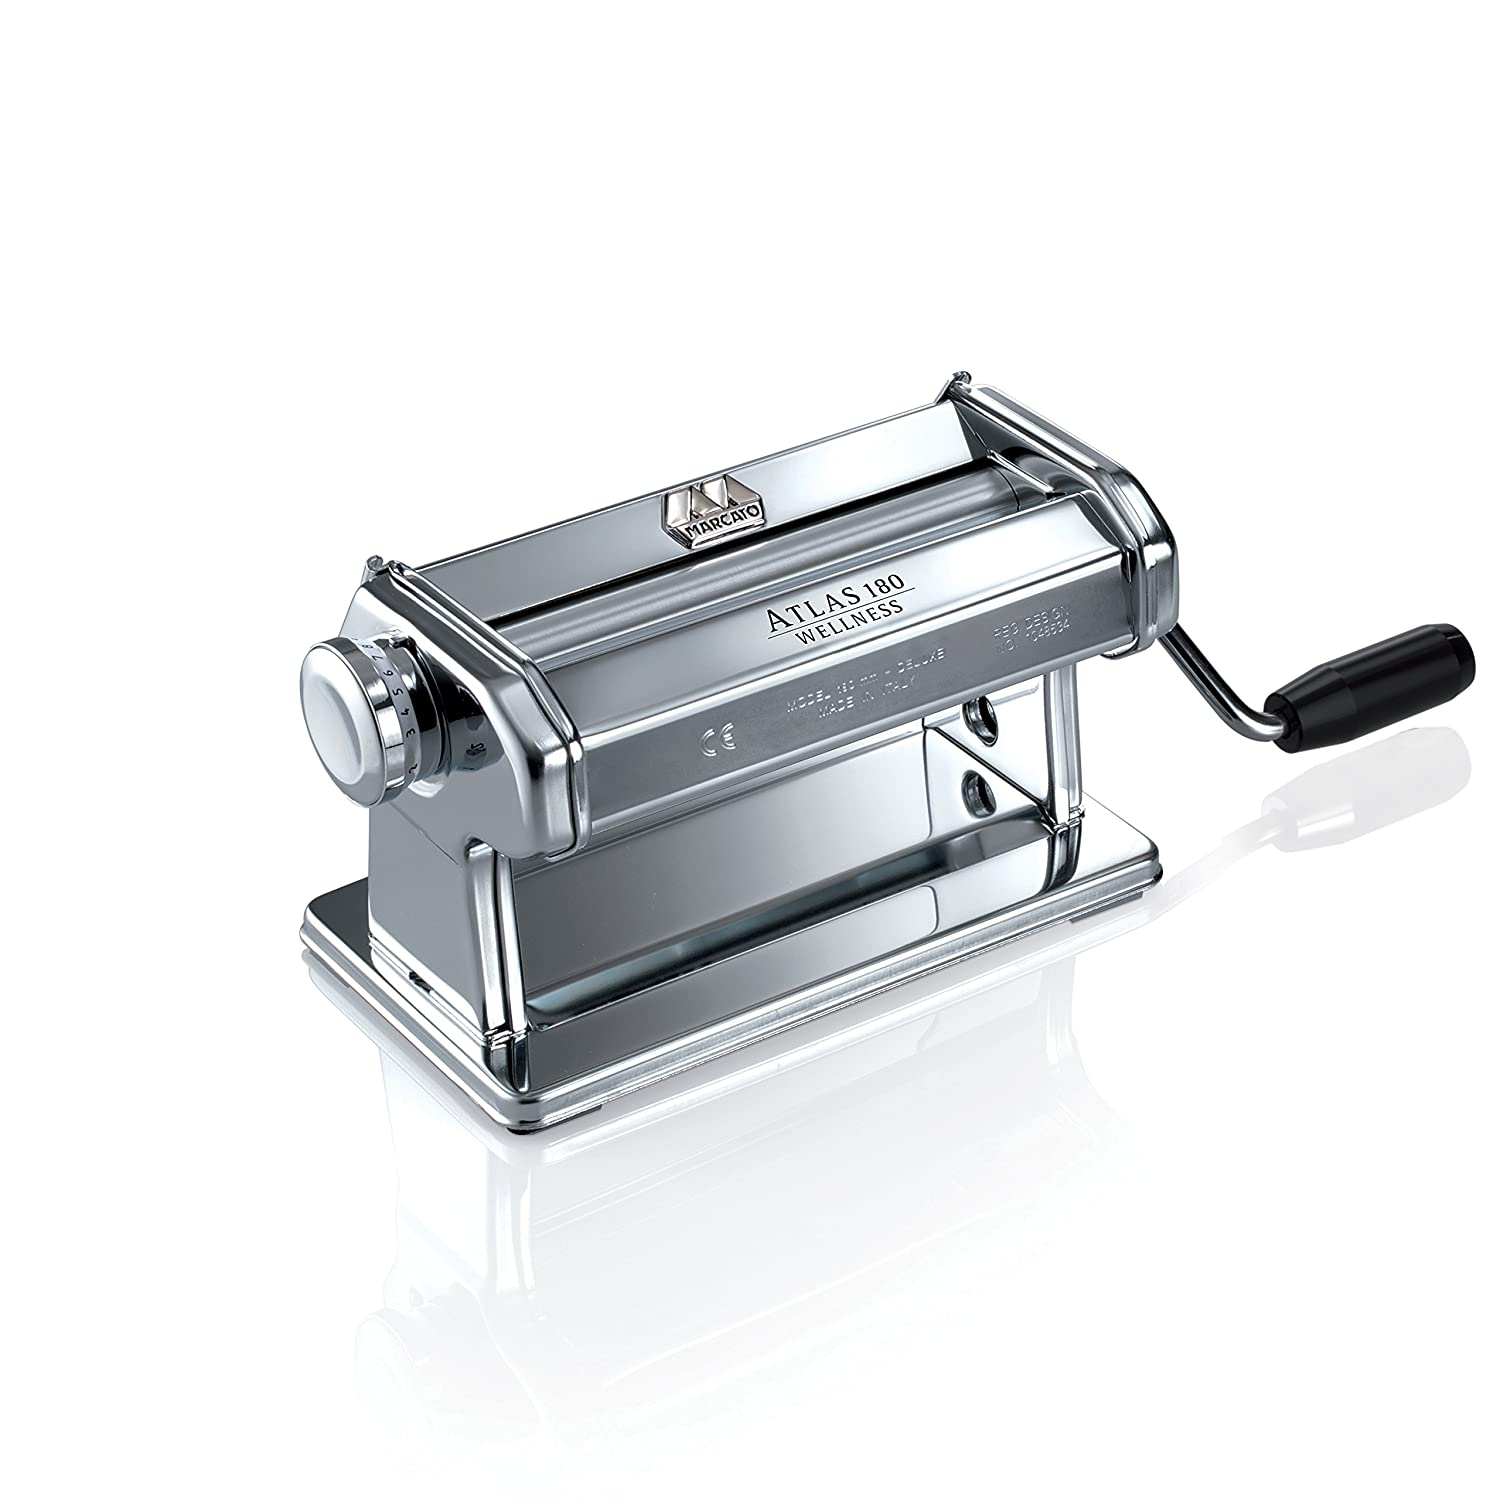 Atlas 180 Wellness Pasta Maker Roller